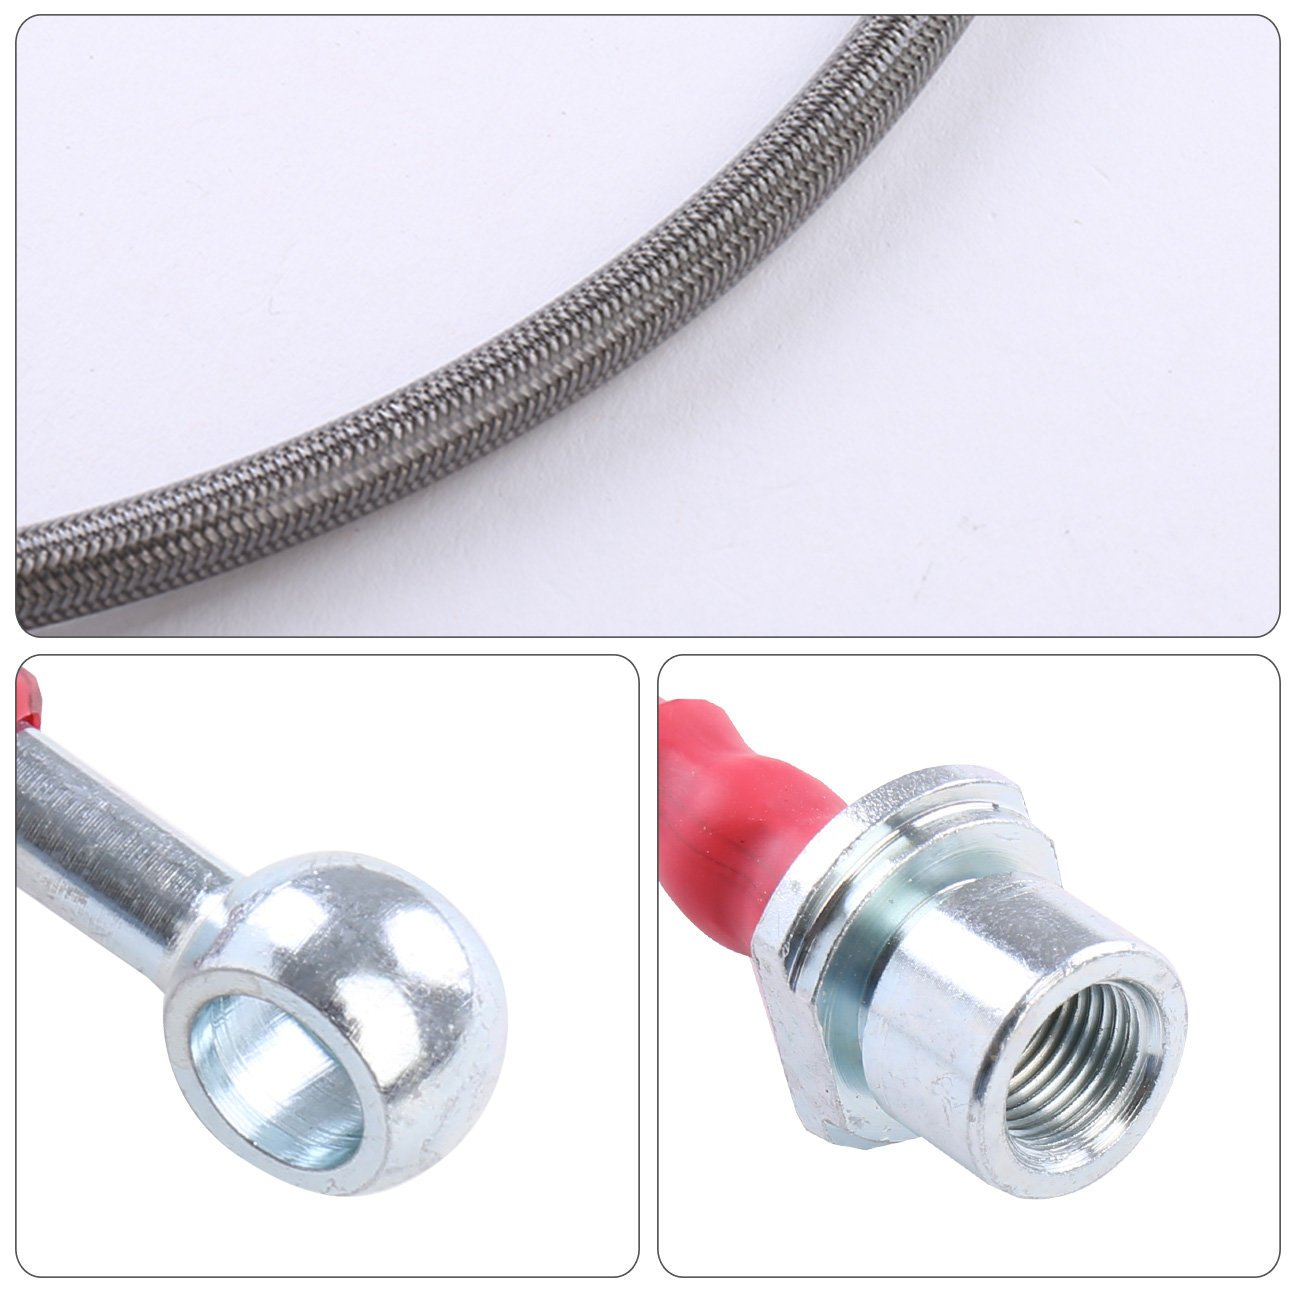 For Toyota Corolla E120 Front Rear Stainless Steel Braided Oil Brake Line Cable Hose Red End Cap Upgrade Replacement